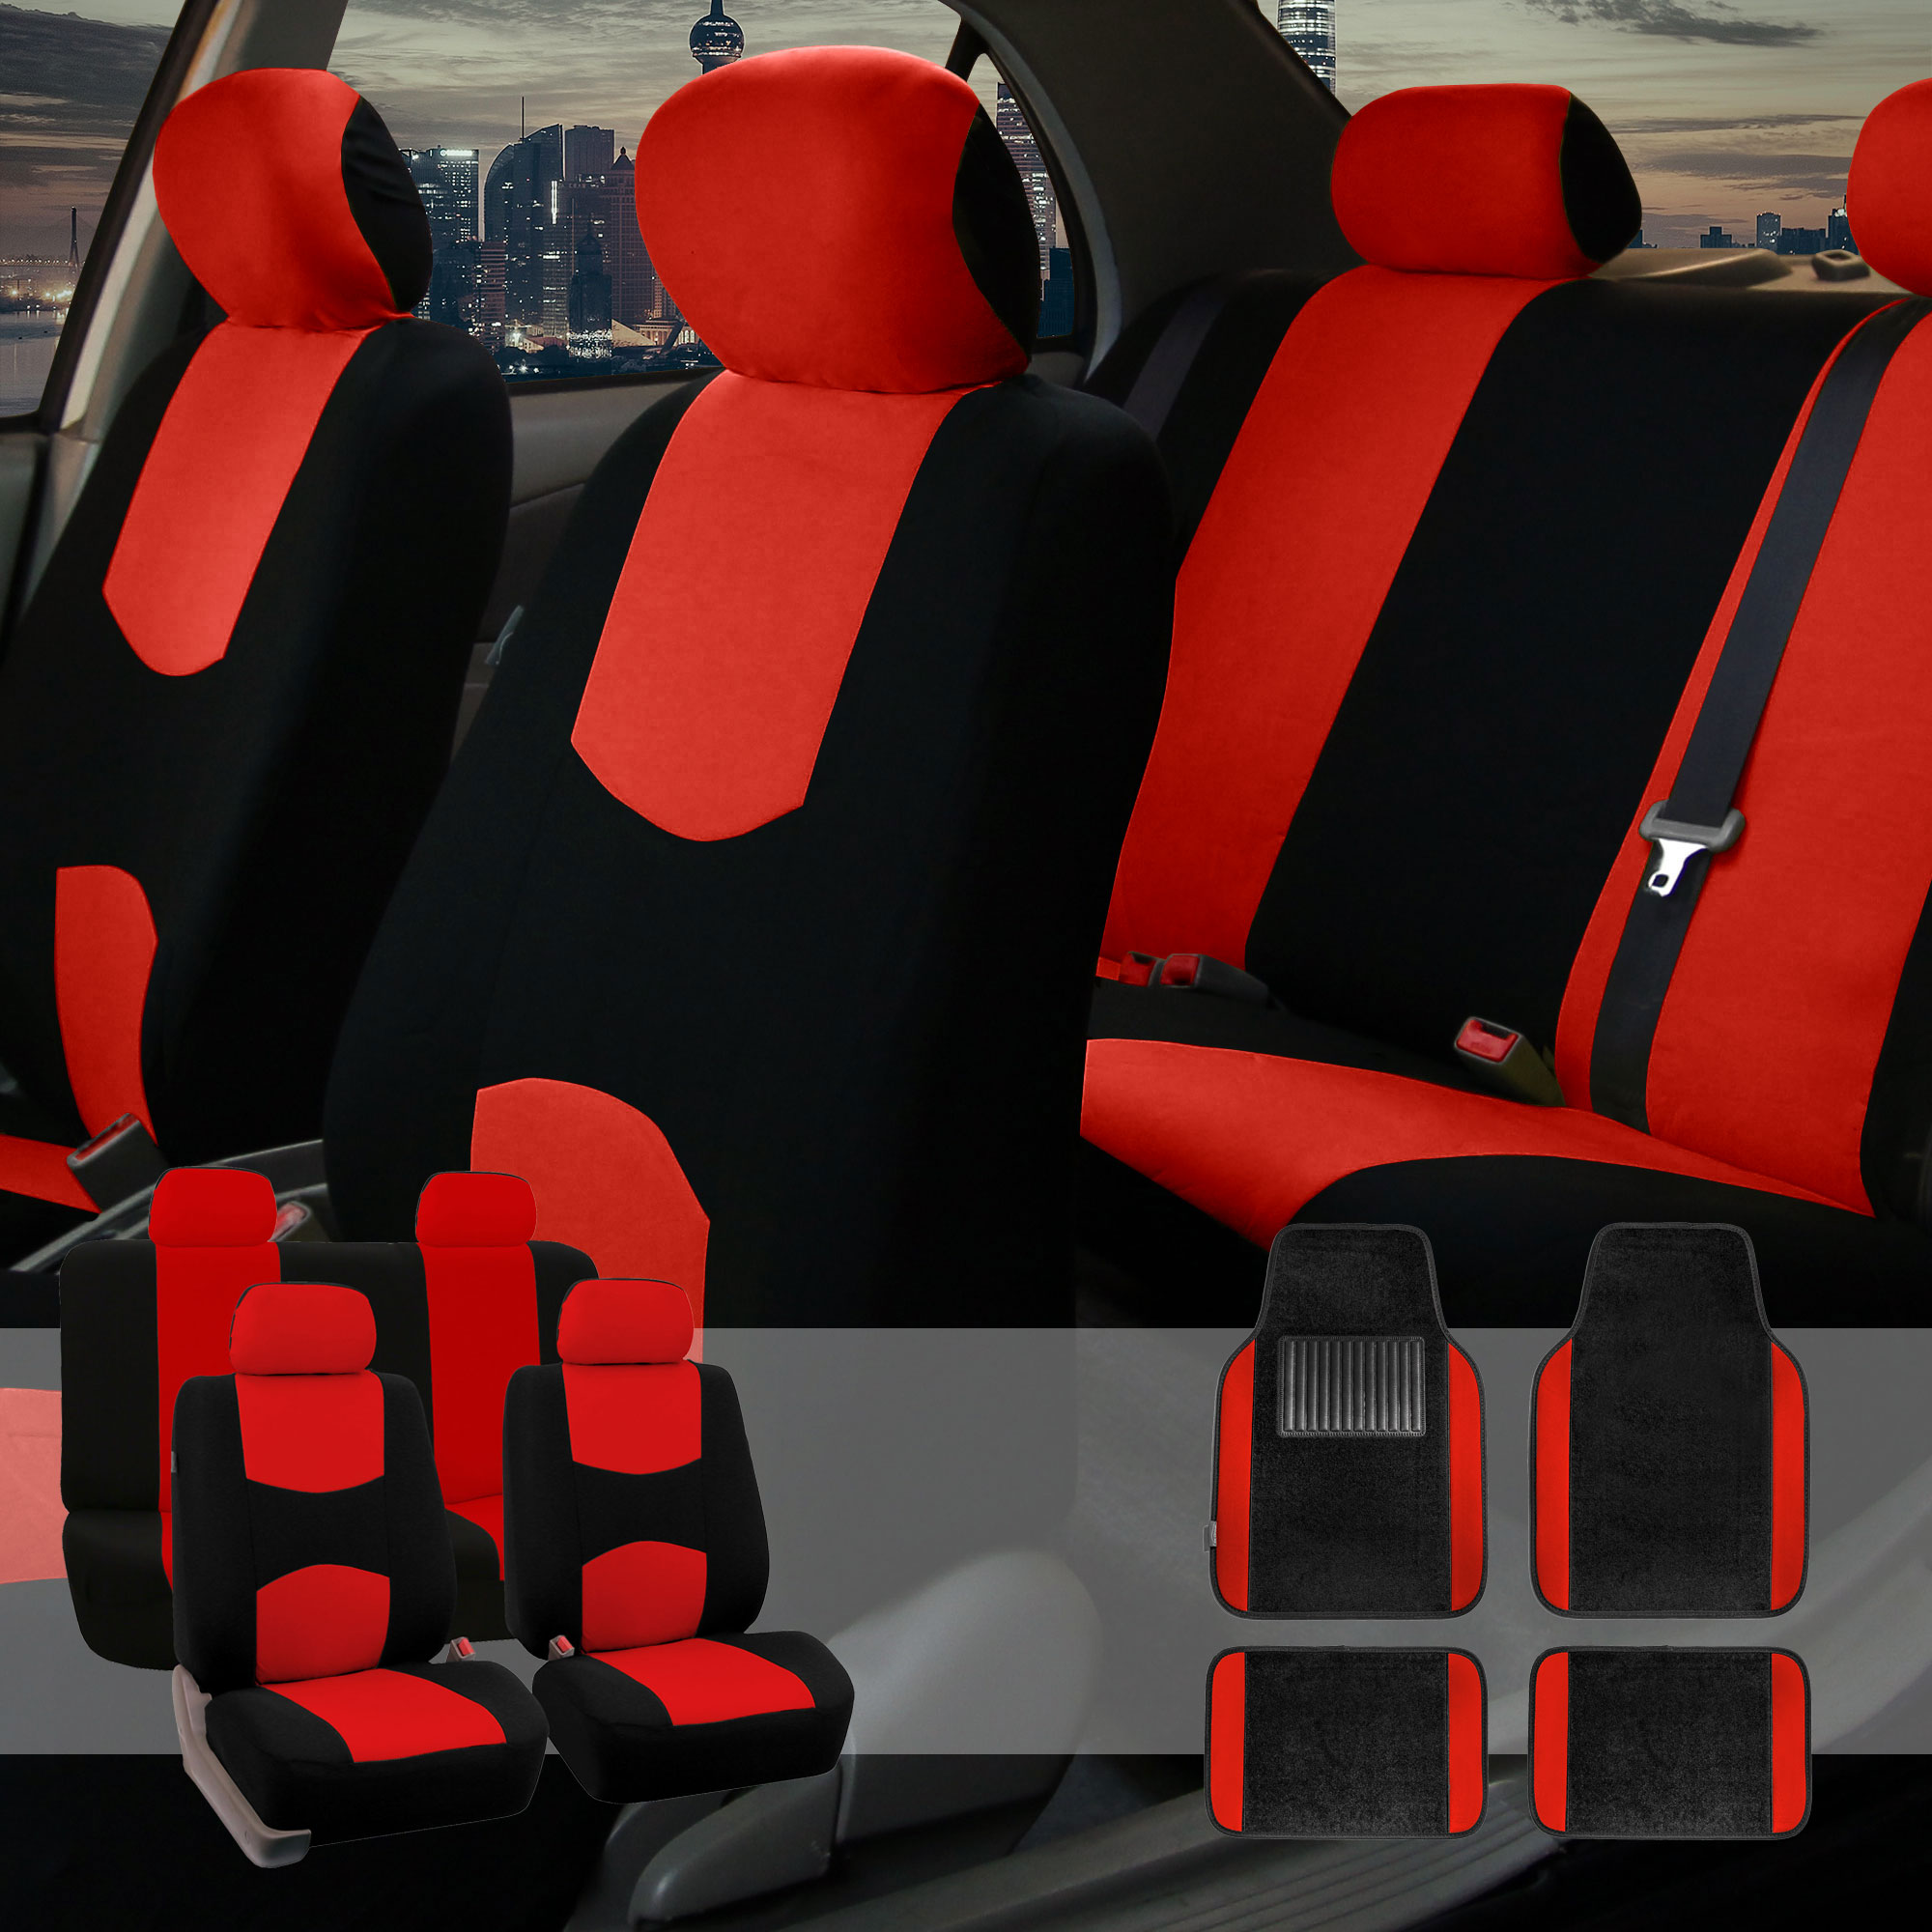 Car Seat Covers Set For Auto 4 Headrests Black Red With Carpet